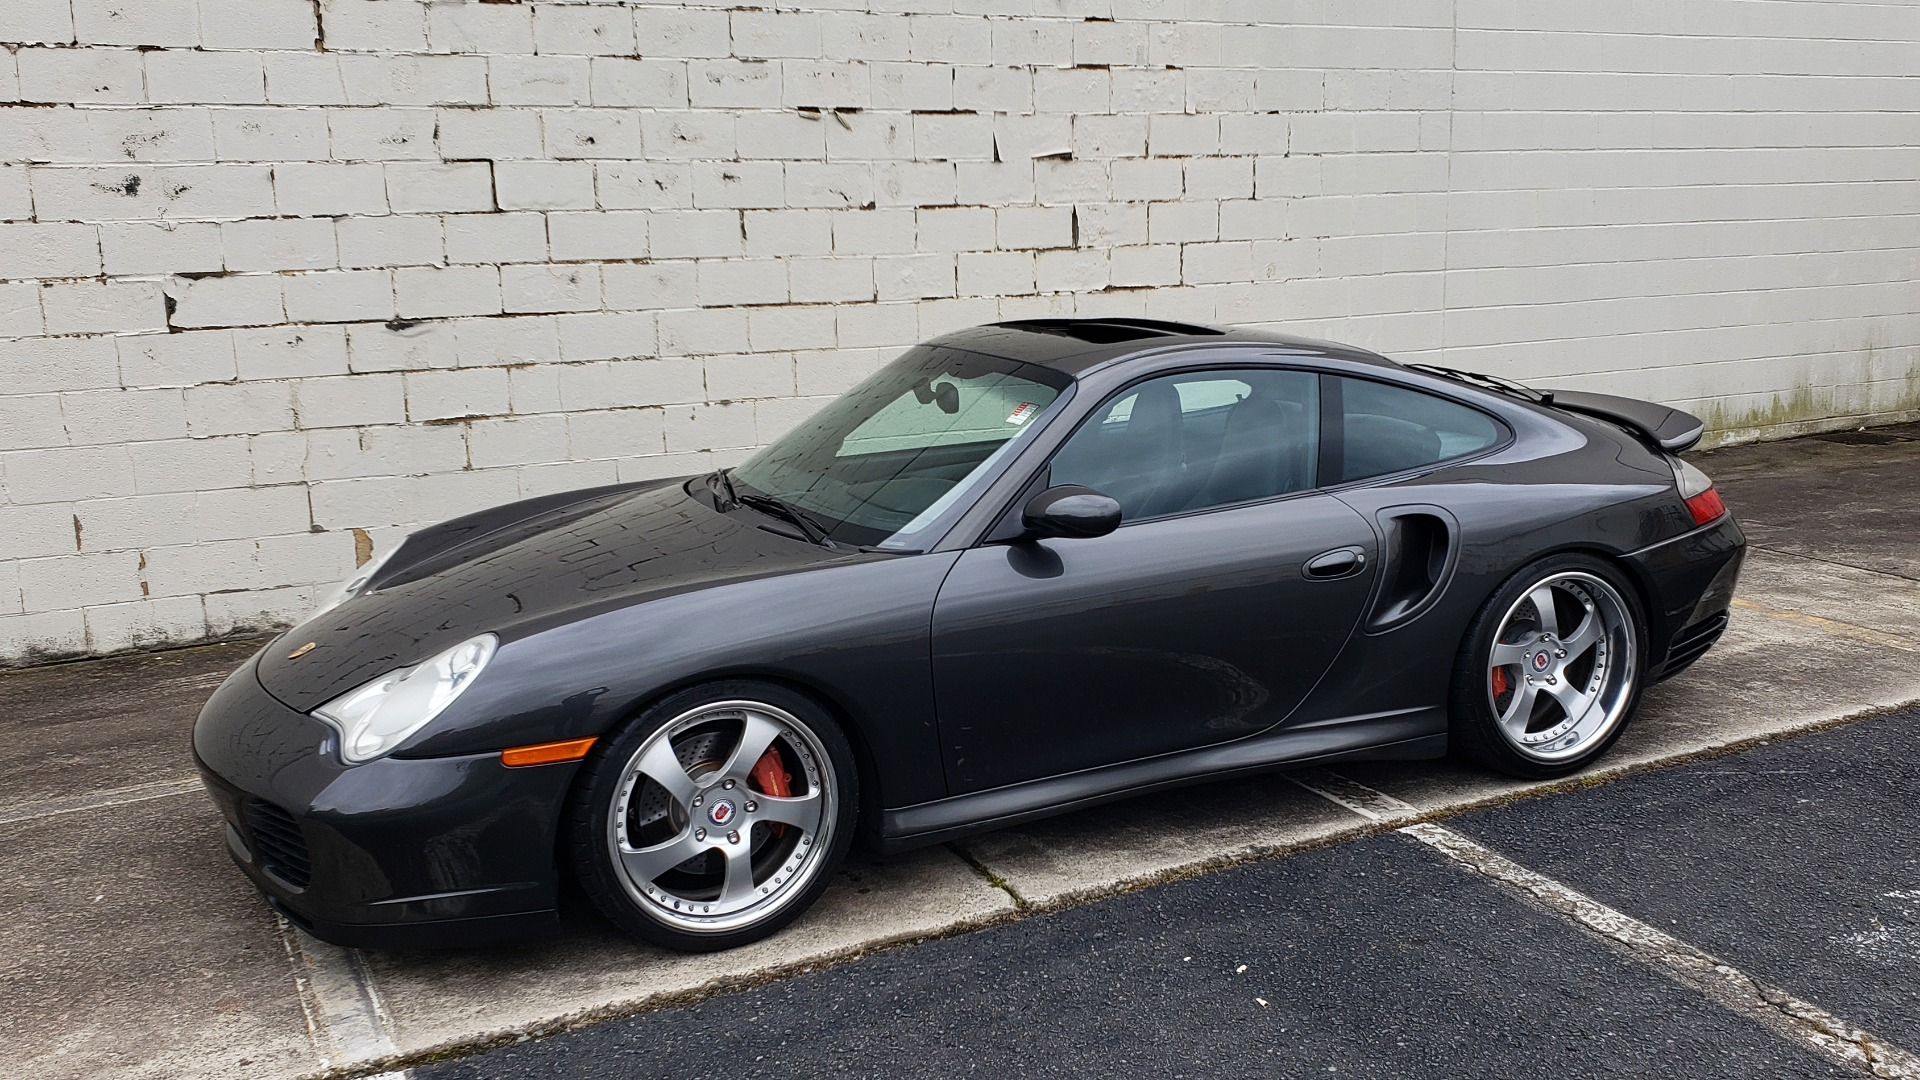 Used 2002 Porsche 911 CARRERA TURBO COUPE / 6-SPD MANUAL / PERF UPGRADES & CUSTOM TUNE for sale Sold at Formula Imports in Charlotte NC 28227 80